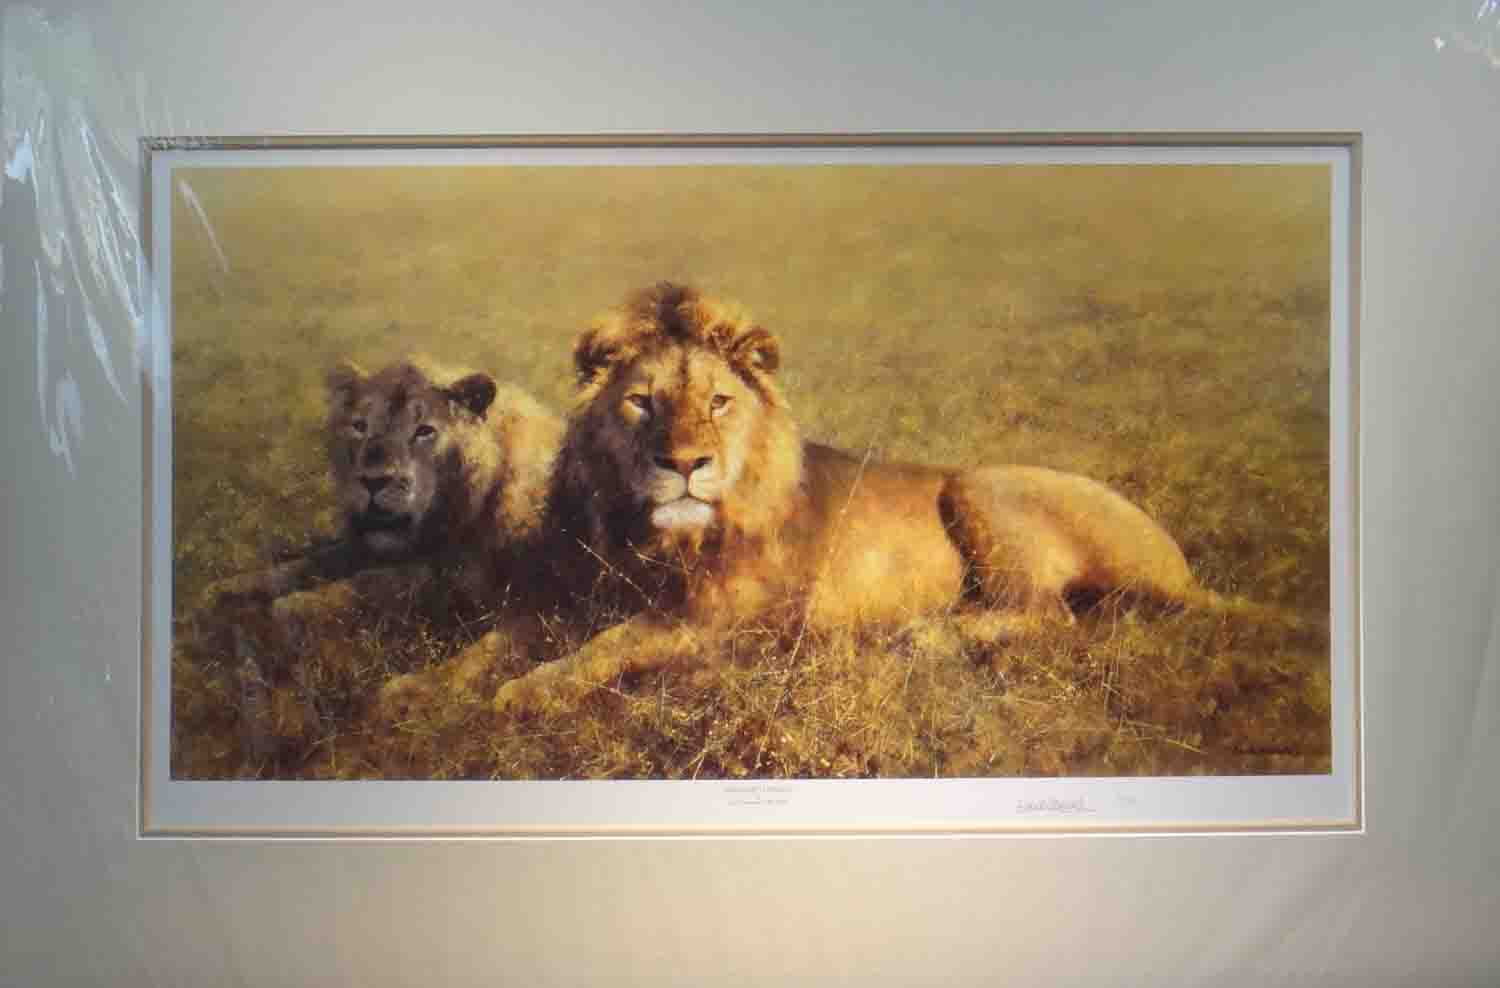 david shepherd Serengeti friends mounted